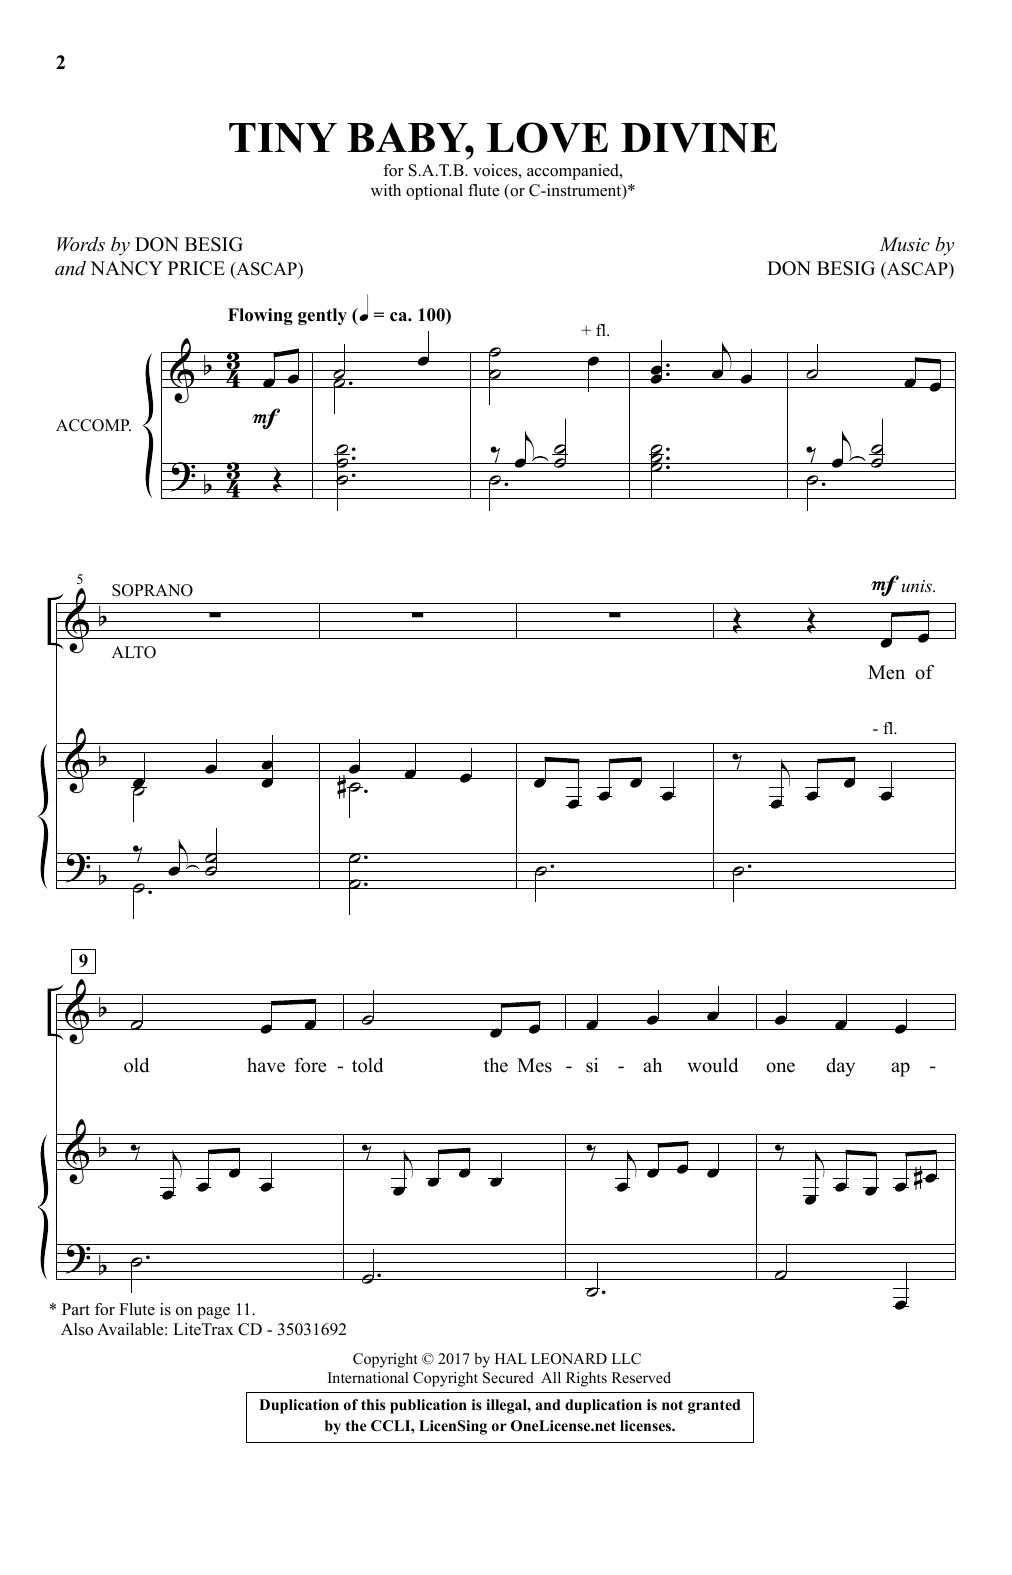 Tiny Baby, Love Divine (SATB Choir)